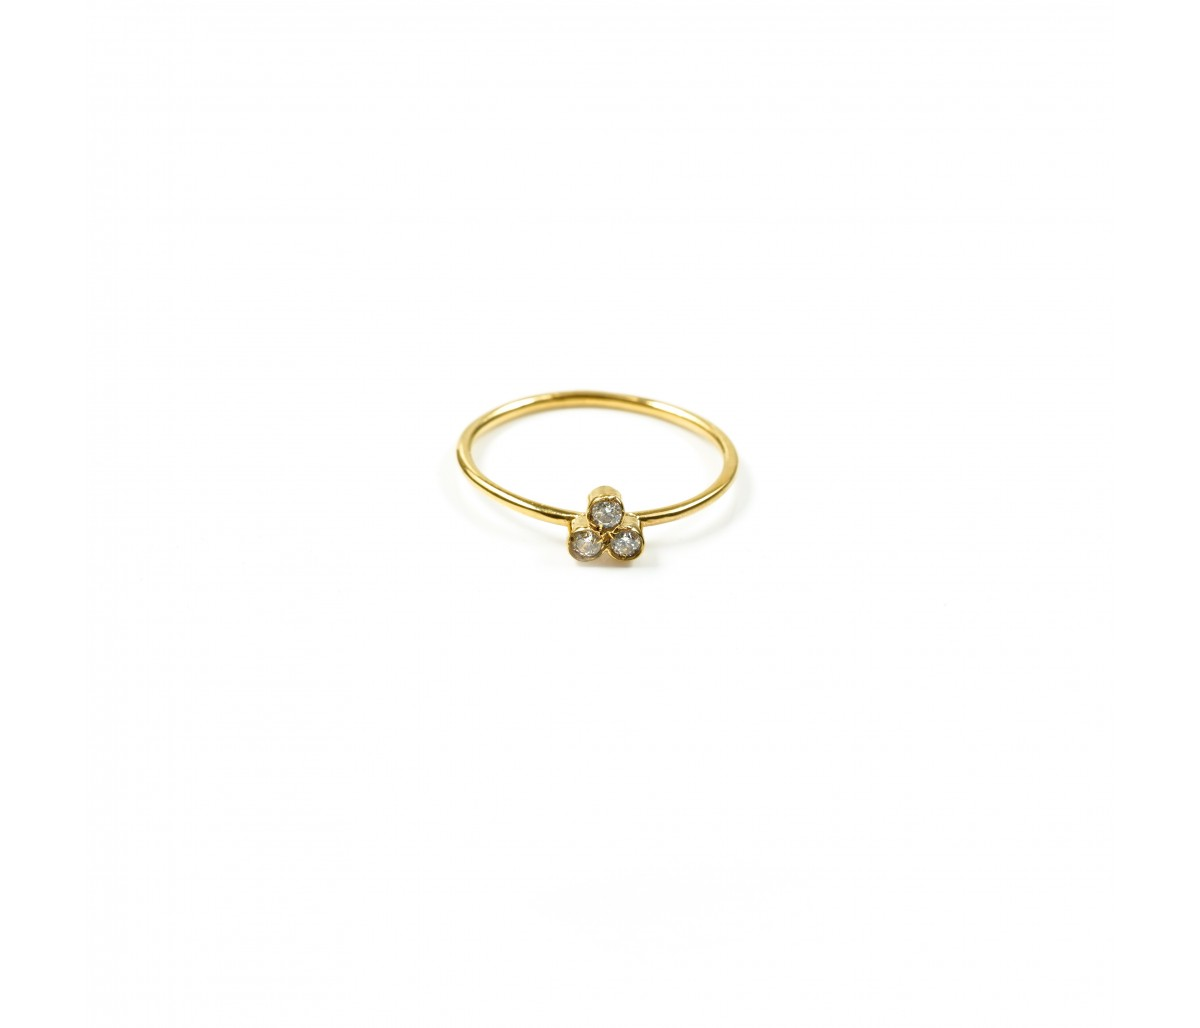 Lise 19k gold ring